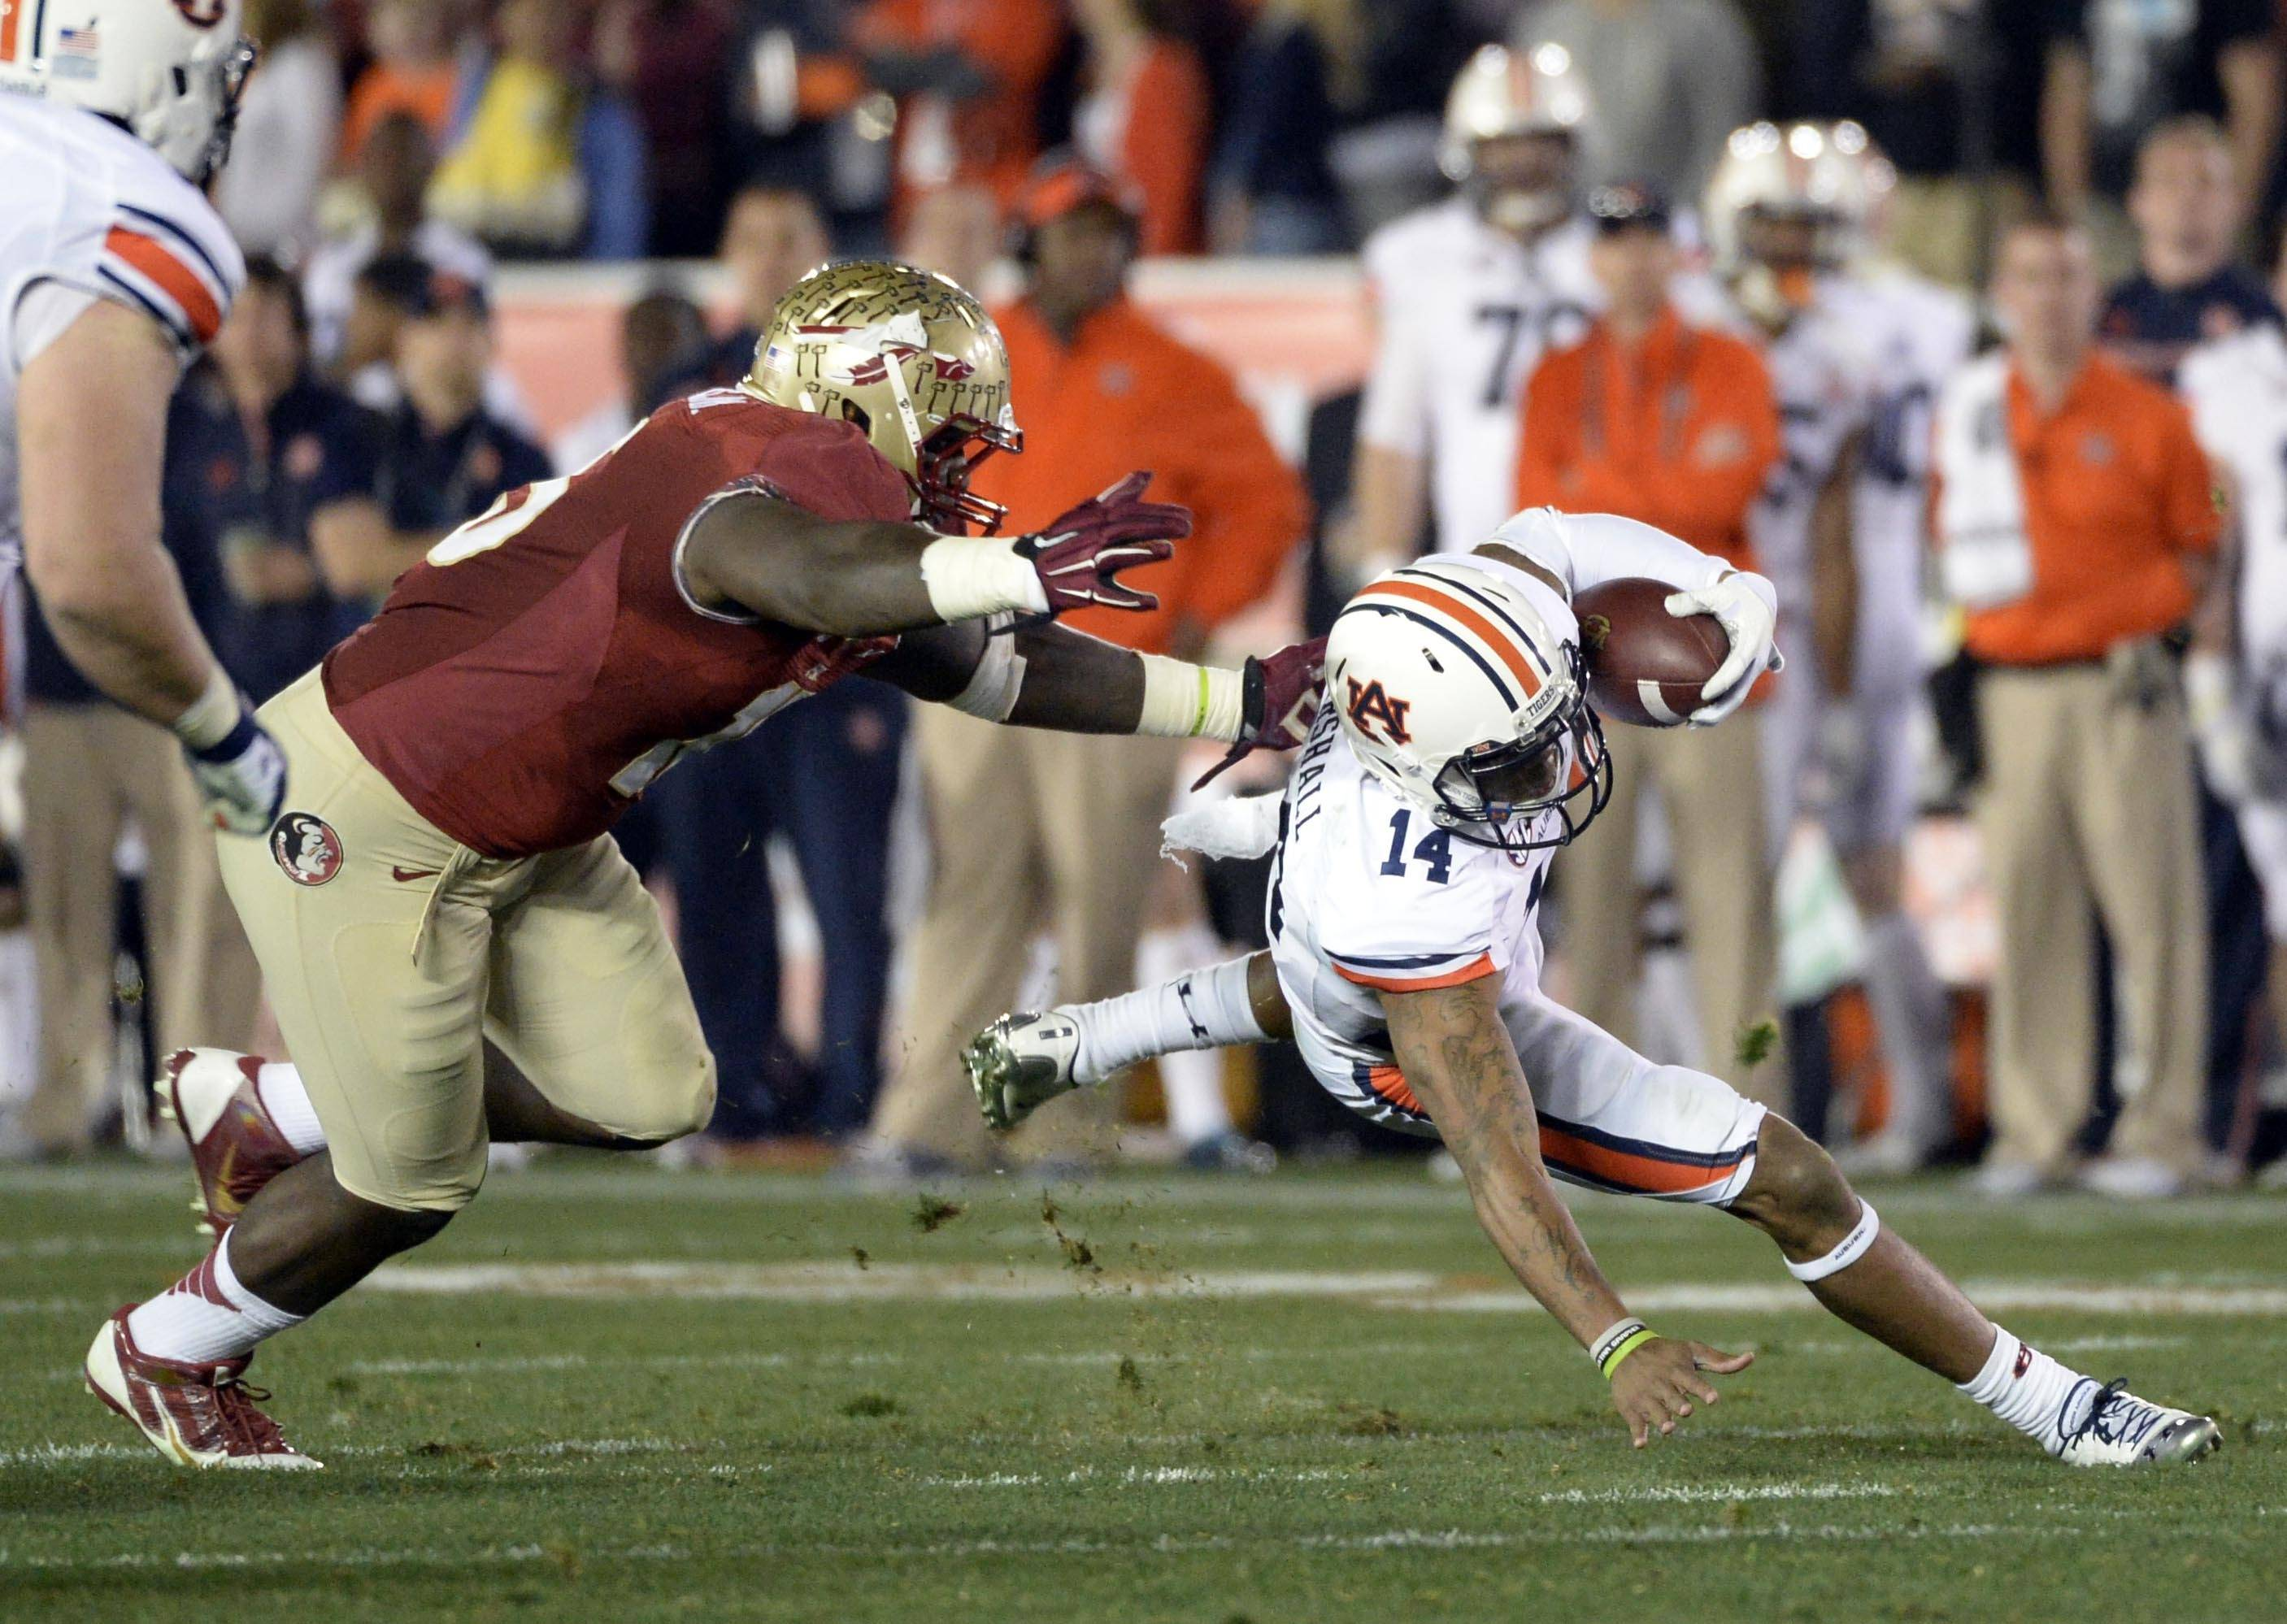 Jan 6, 2014; Pasadena, CA, USA; Florida State Seminoles defensive end Mario Edwards Jr. (15) tackles Auburn Tigers quarterback Nick Marshall (14) during the first half of the 2014 BCS National Championship game at the Rose Bowl.  Mandatory Credit: Richard Mackson-USA TODAY Sports